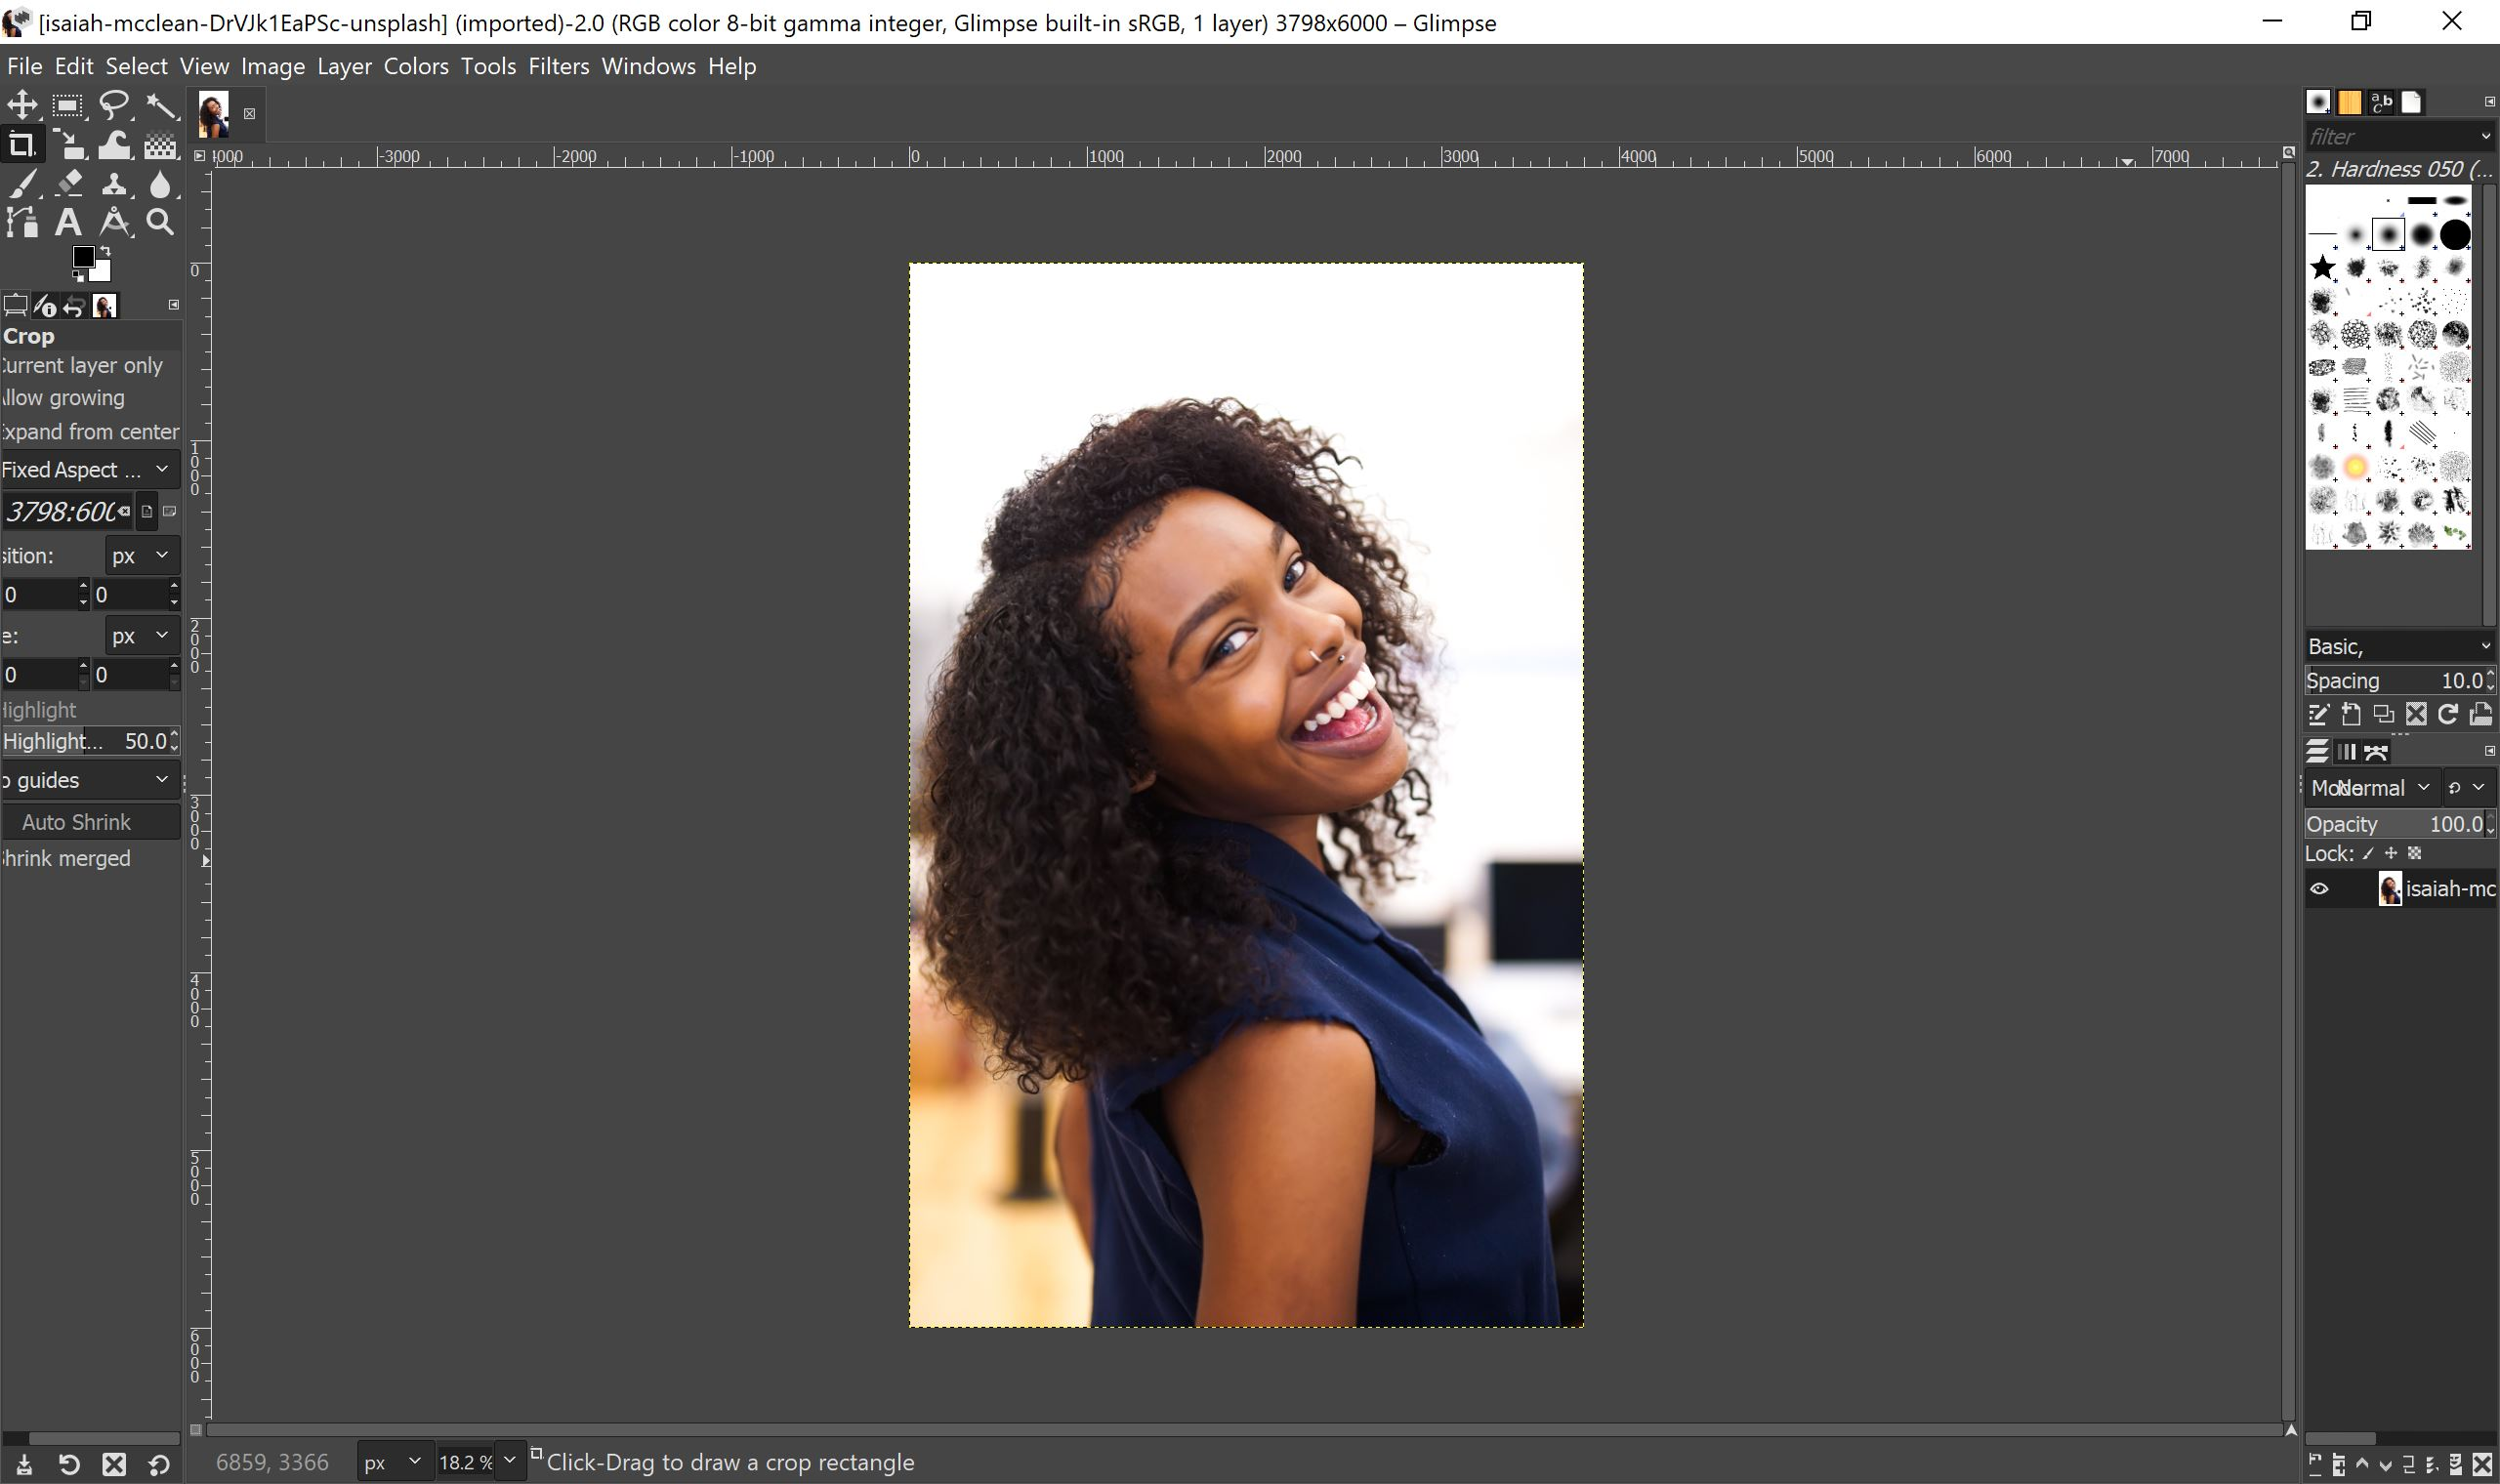 A screenshot of Glimpse showing a photo of an African-American woman smiling